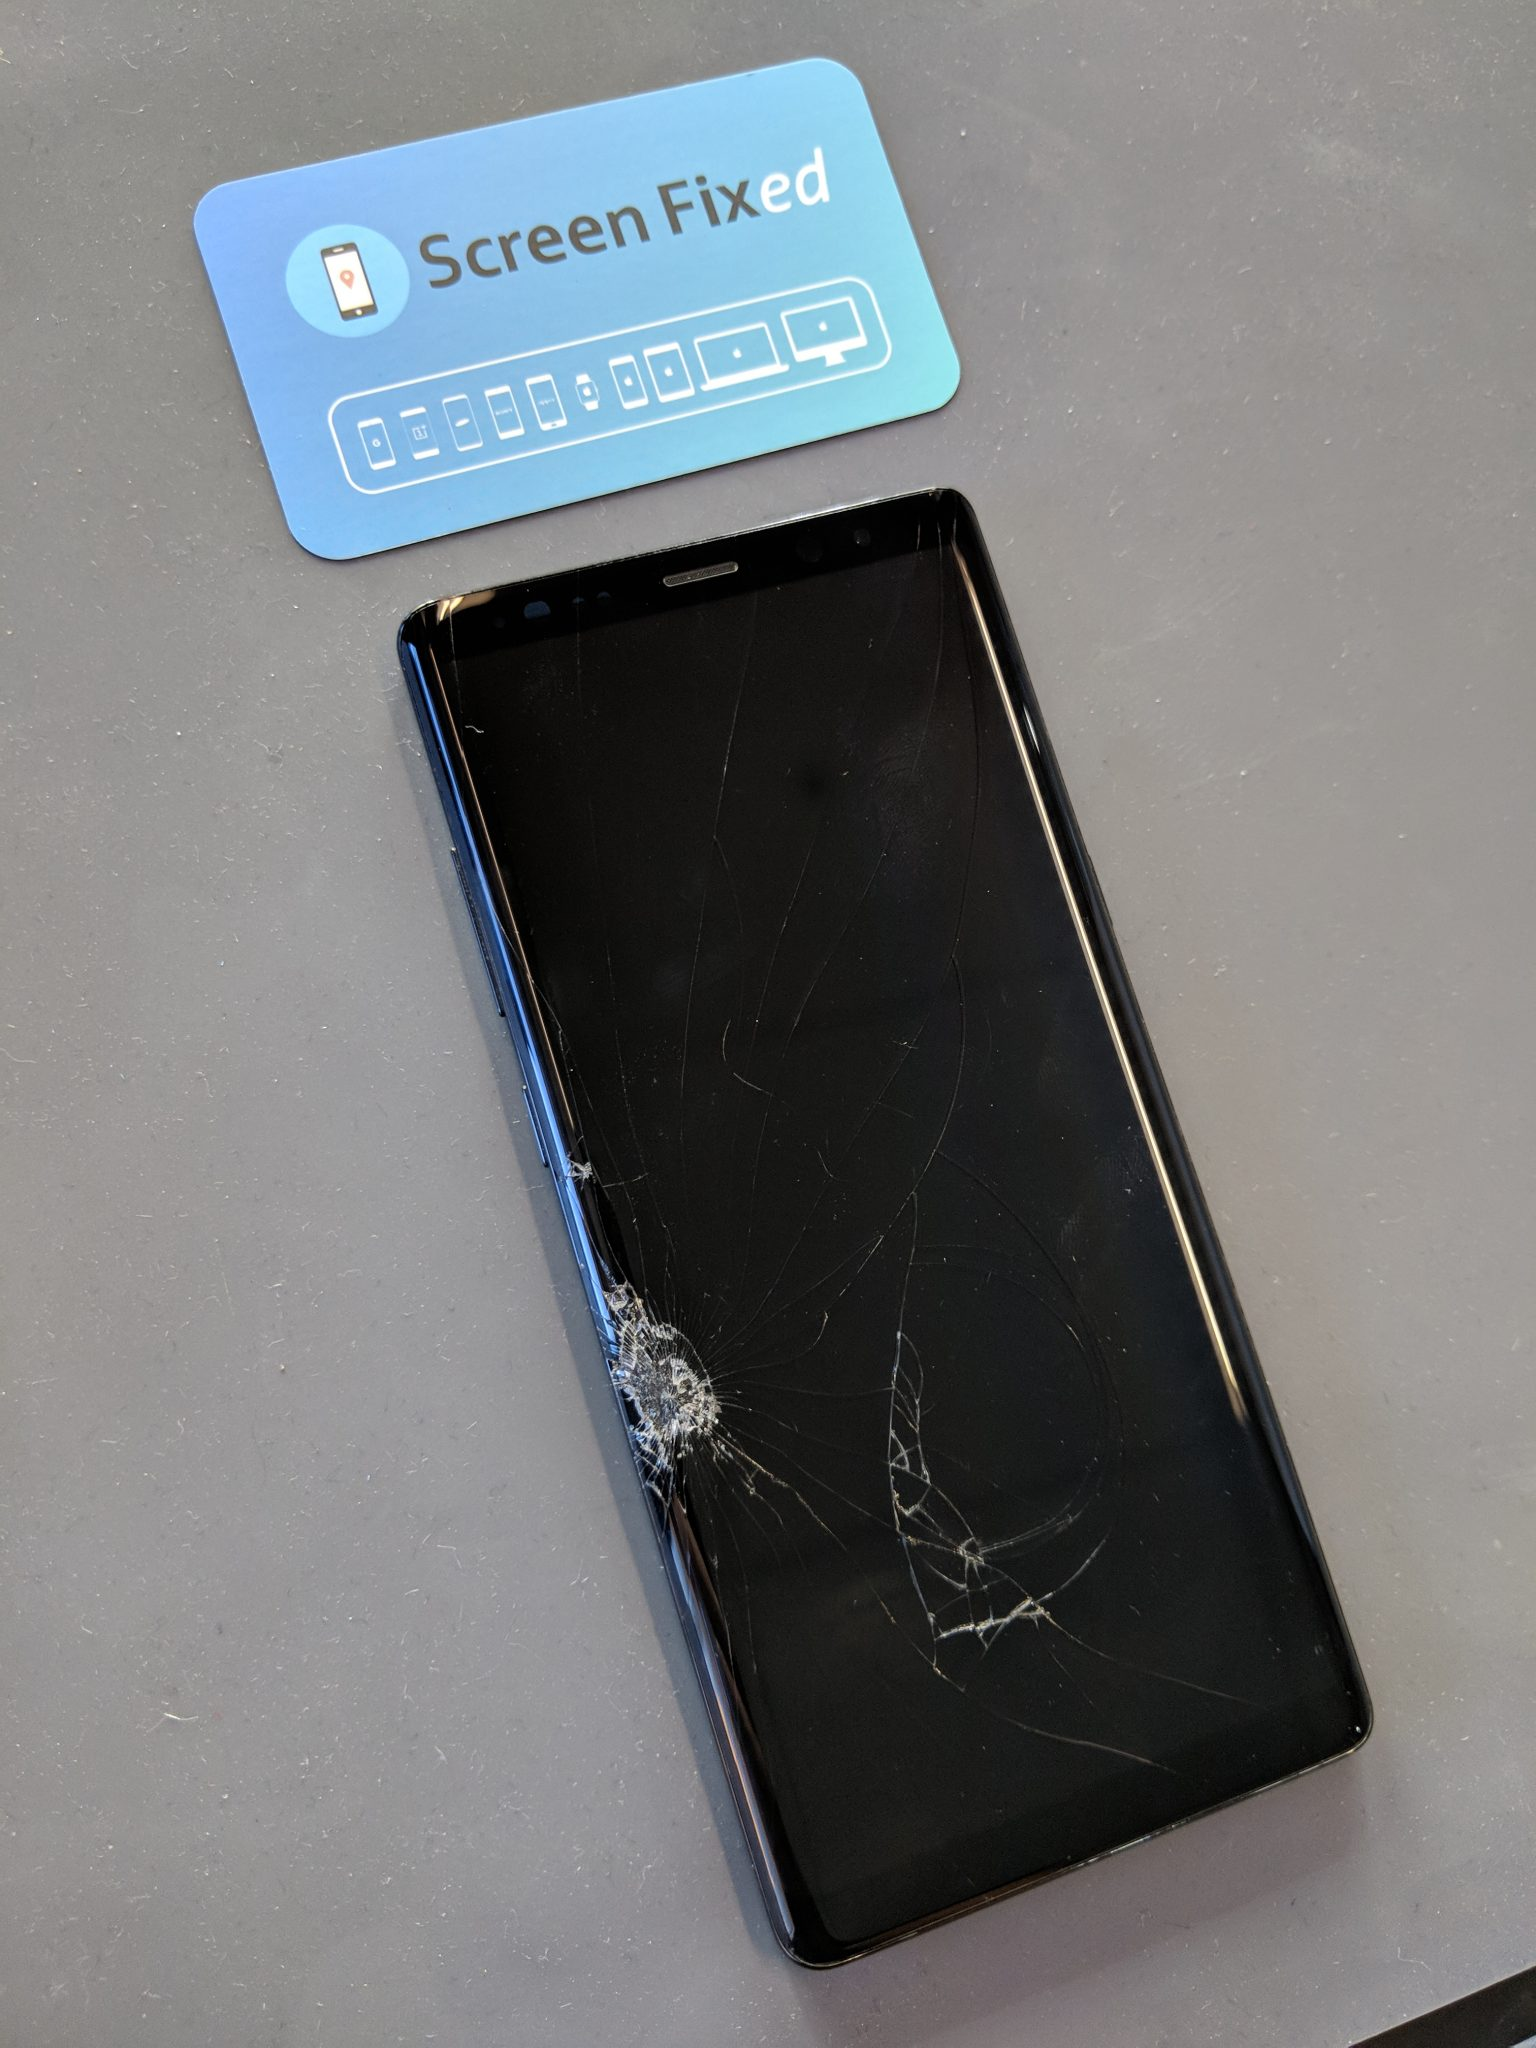 Samsung Galaxy Note Broken Screen